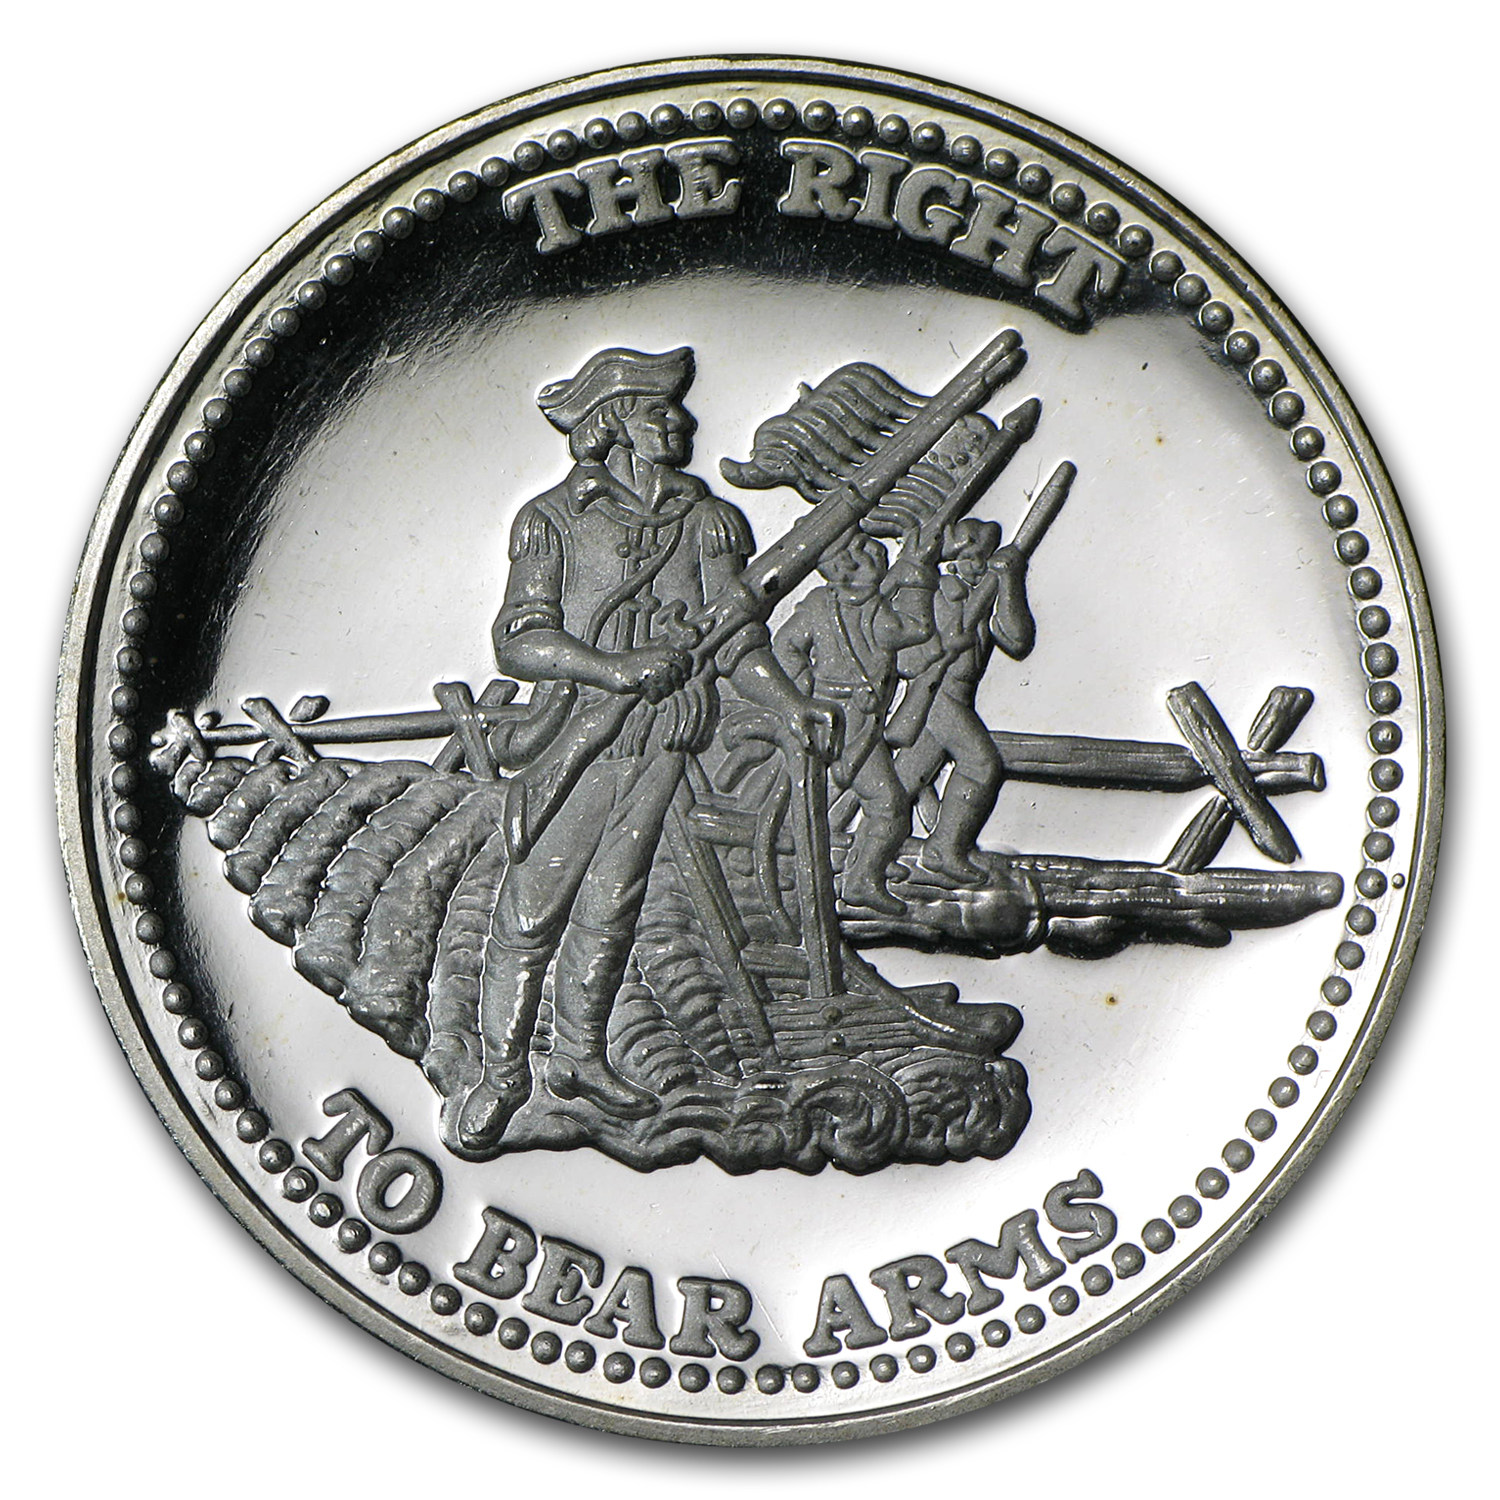 1 oz Silver Round - Johnson Matthey (Right to Bear Arms)